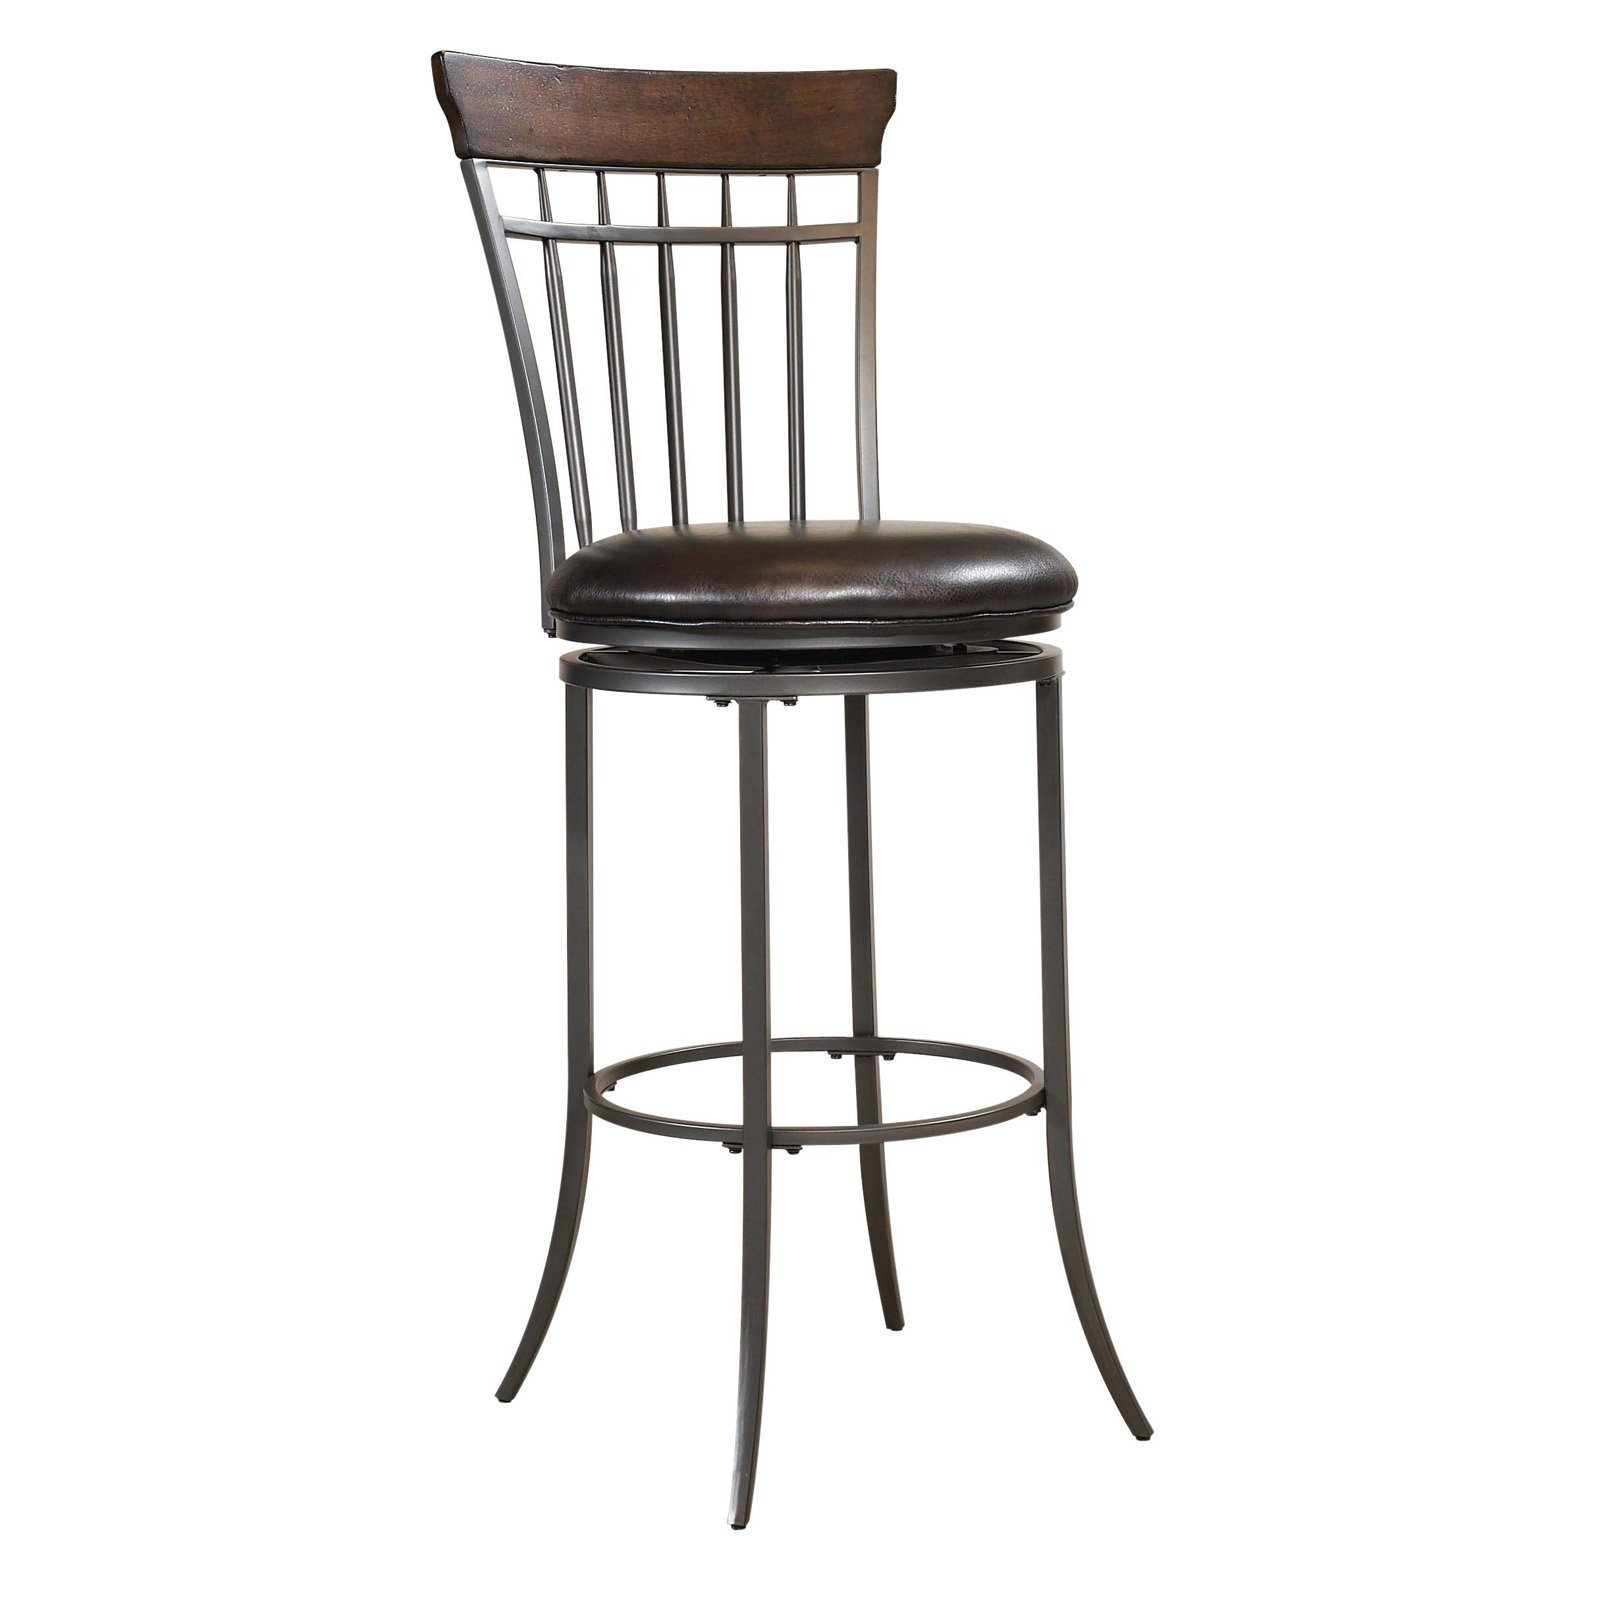 "Hillsdale Furniture Cameron 46"" Vertical Spindle Back Swivel Bar Stool, Chestnut Brown Finish by Hillsdale Furniture LLC"